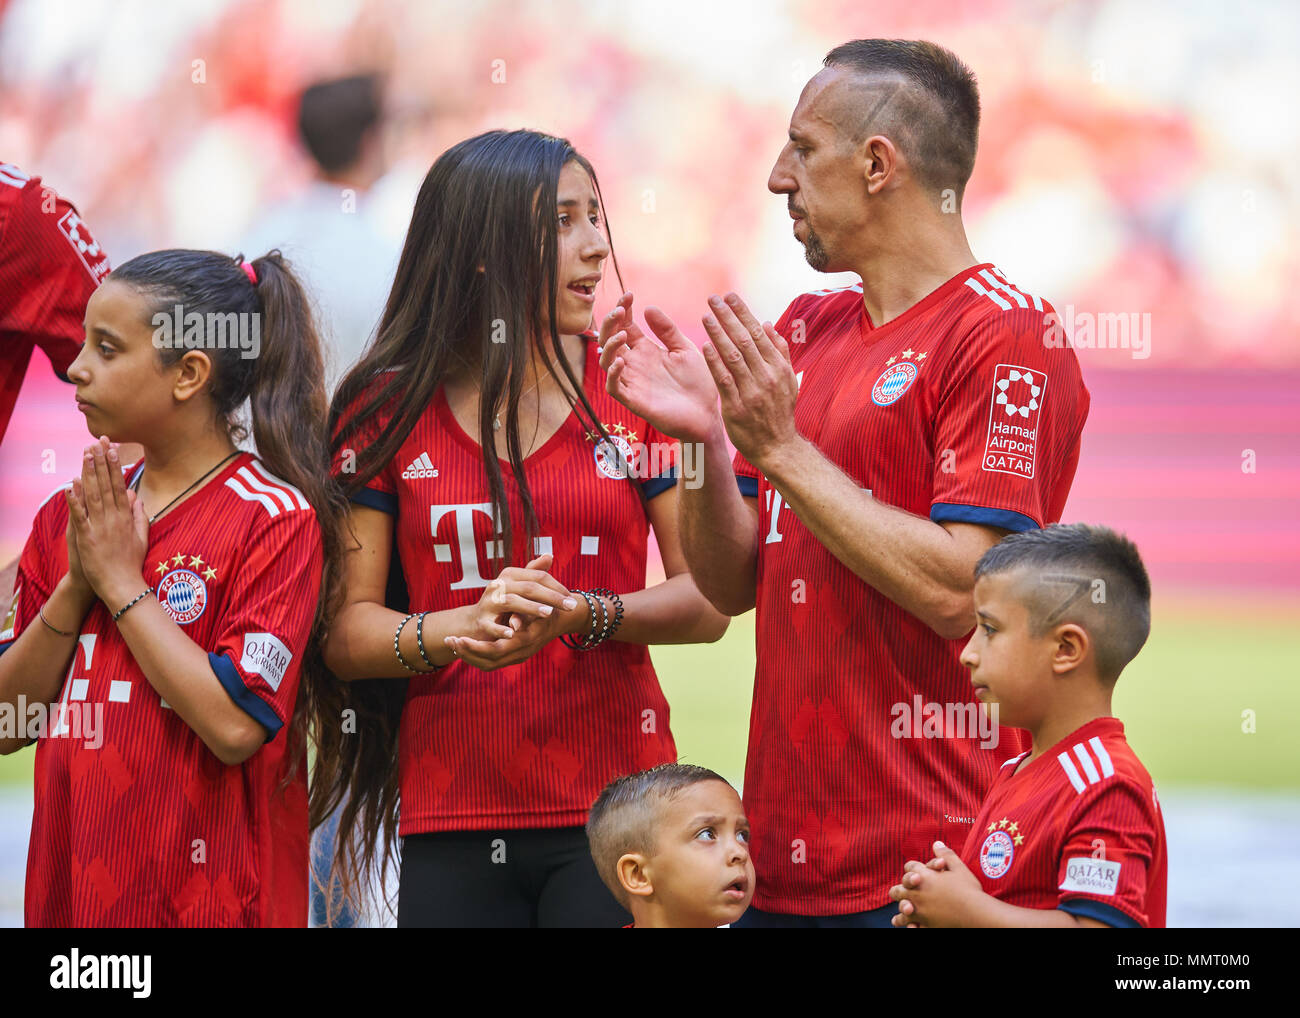 Frank Ribery Football High Resolution Stock Photography and Images ...